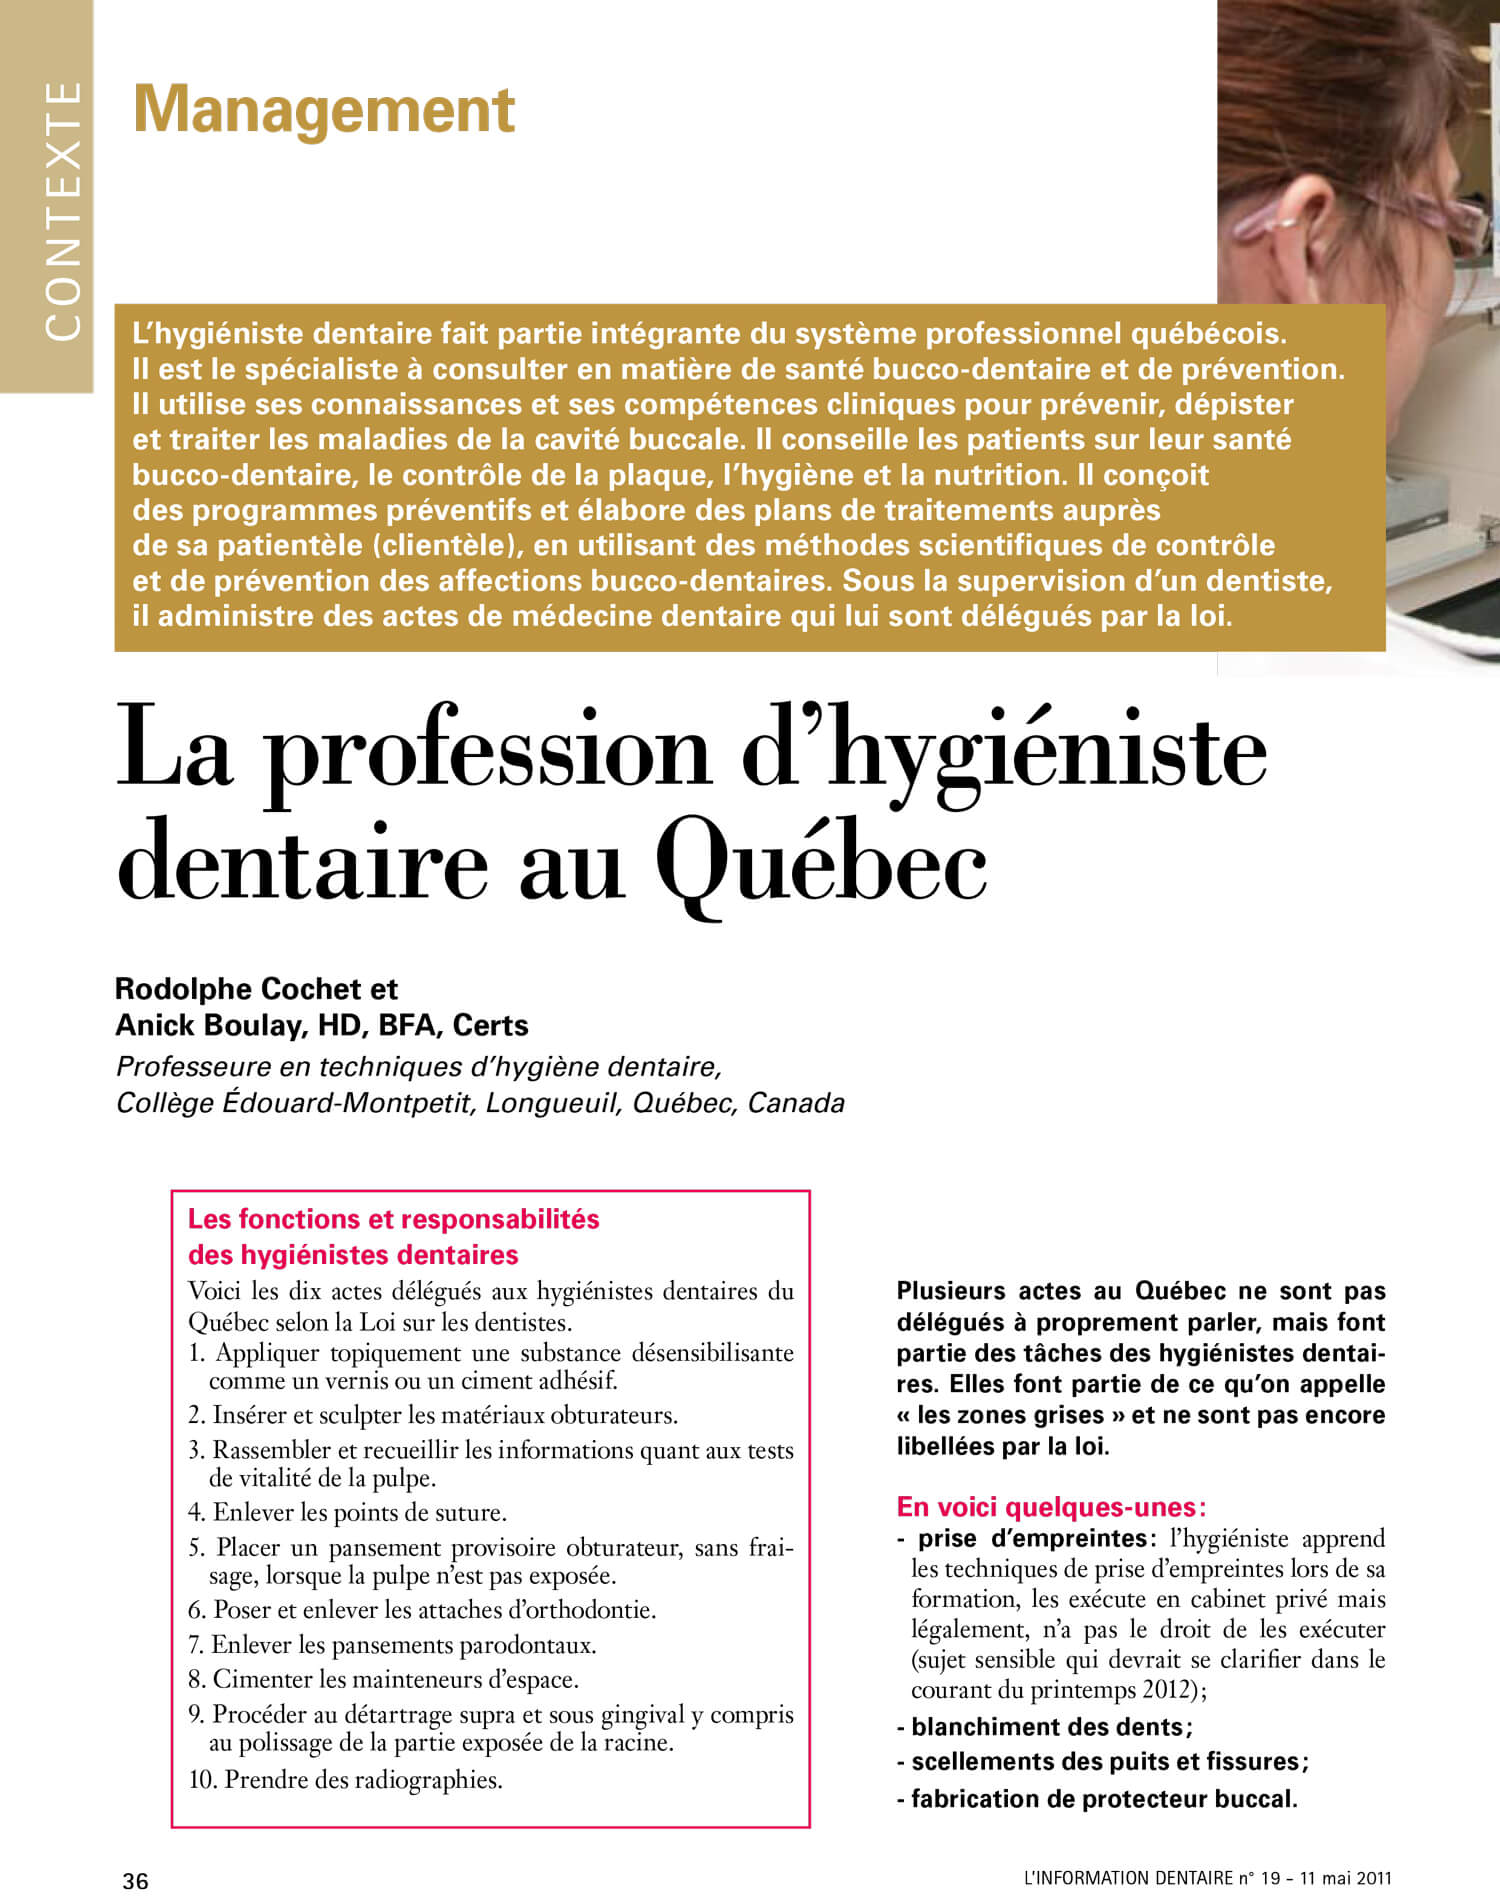 profession-hygieniste-dentaire-quebec-canada-management-rodolphe-cochet-anick-boulay.jpg